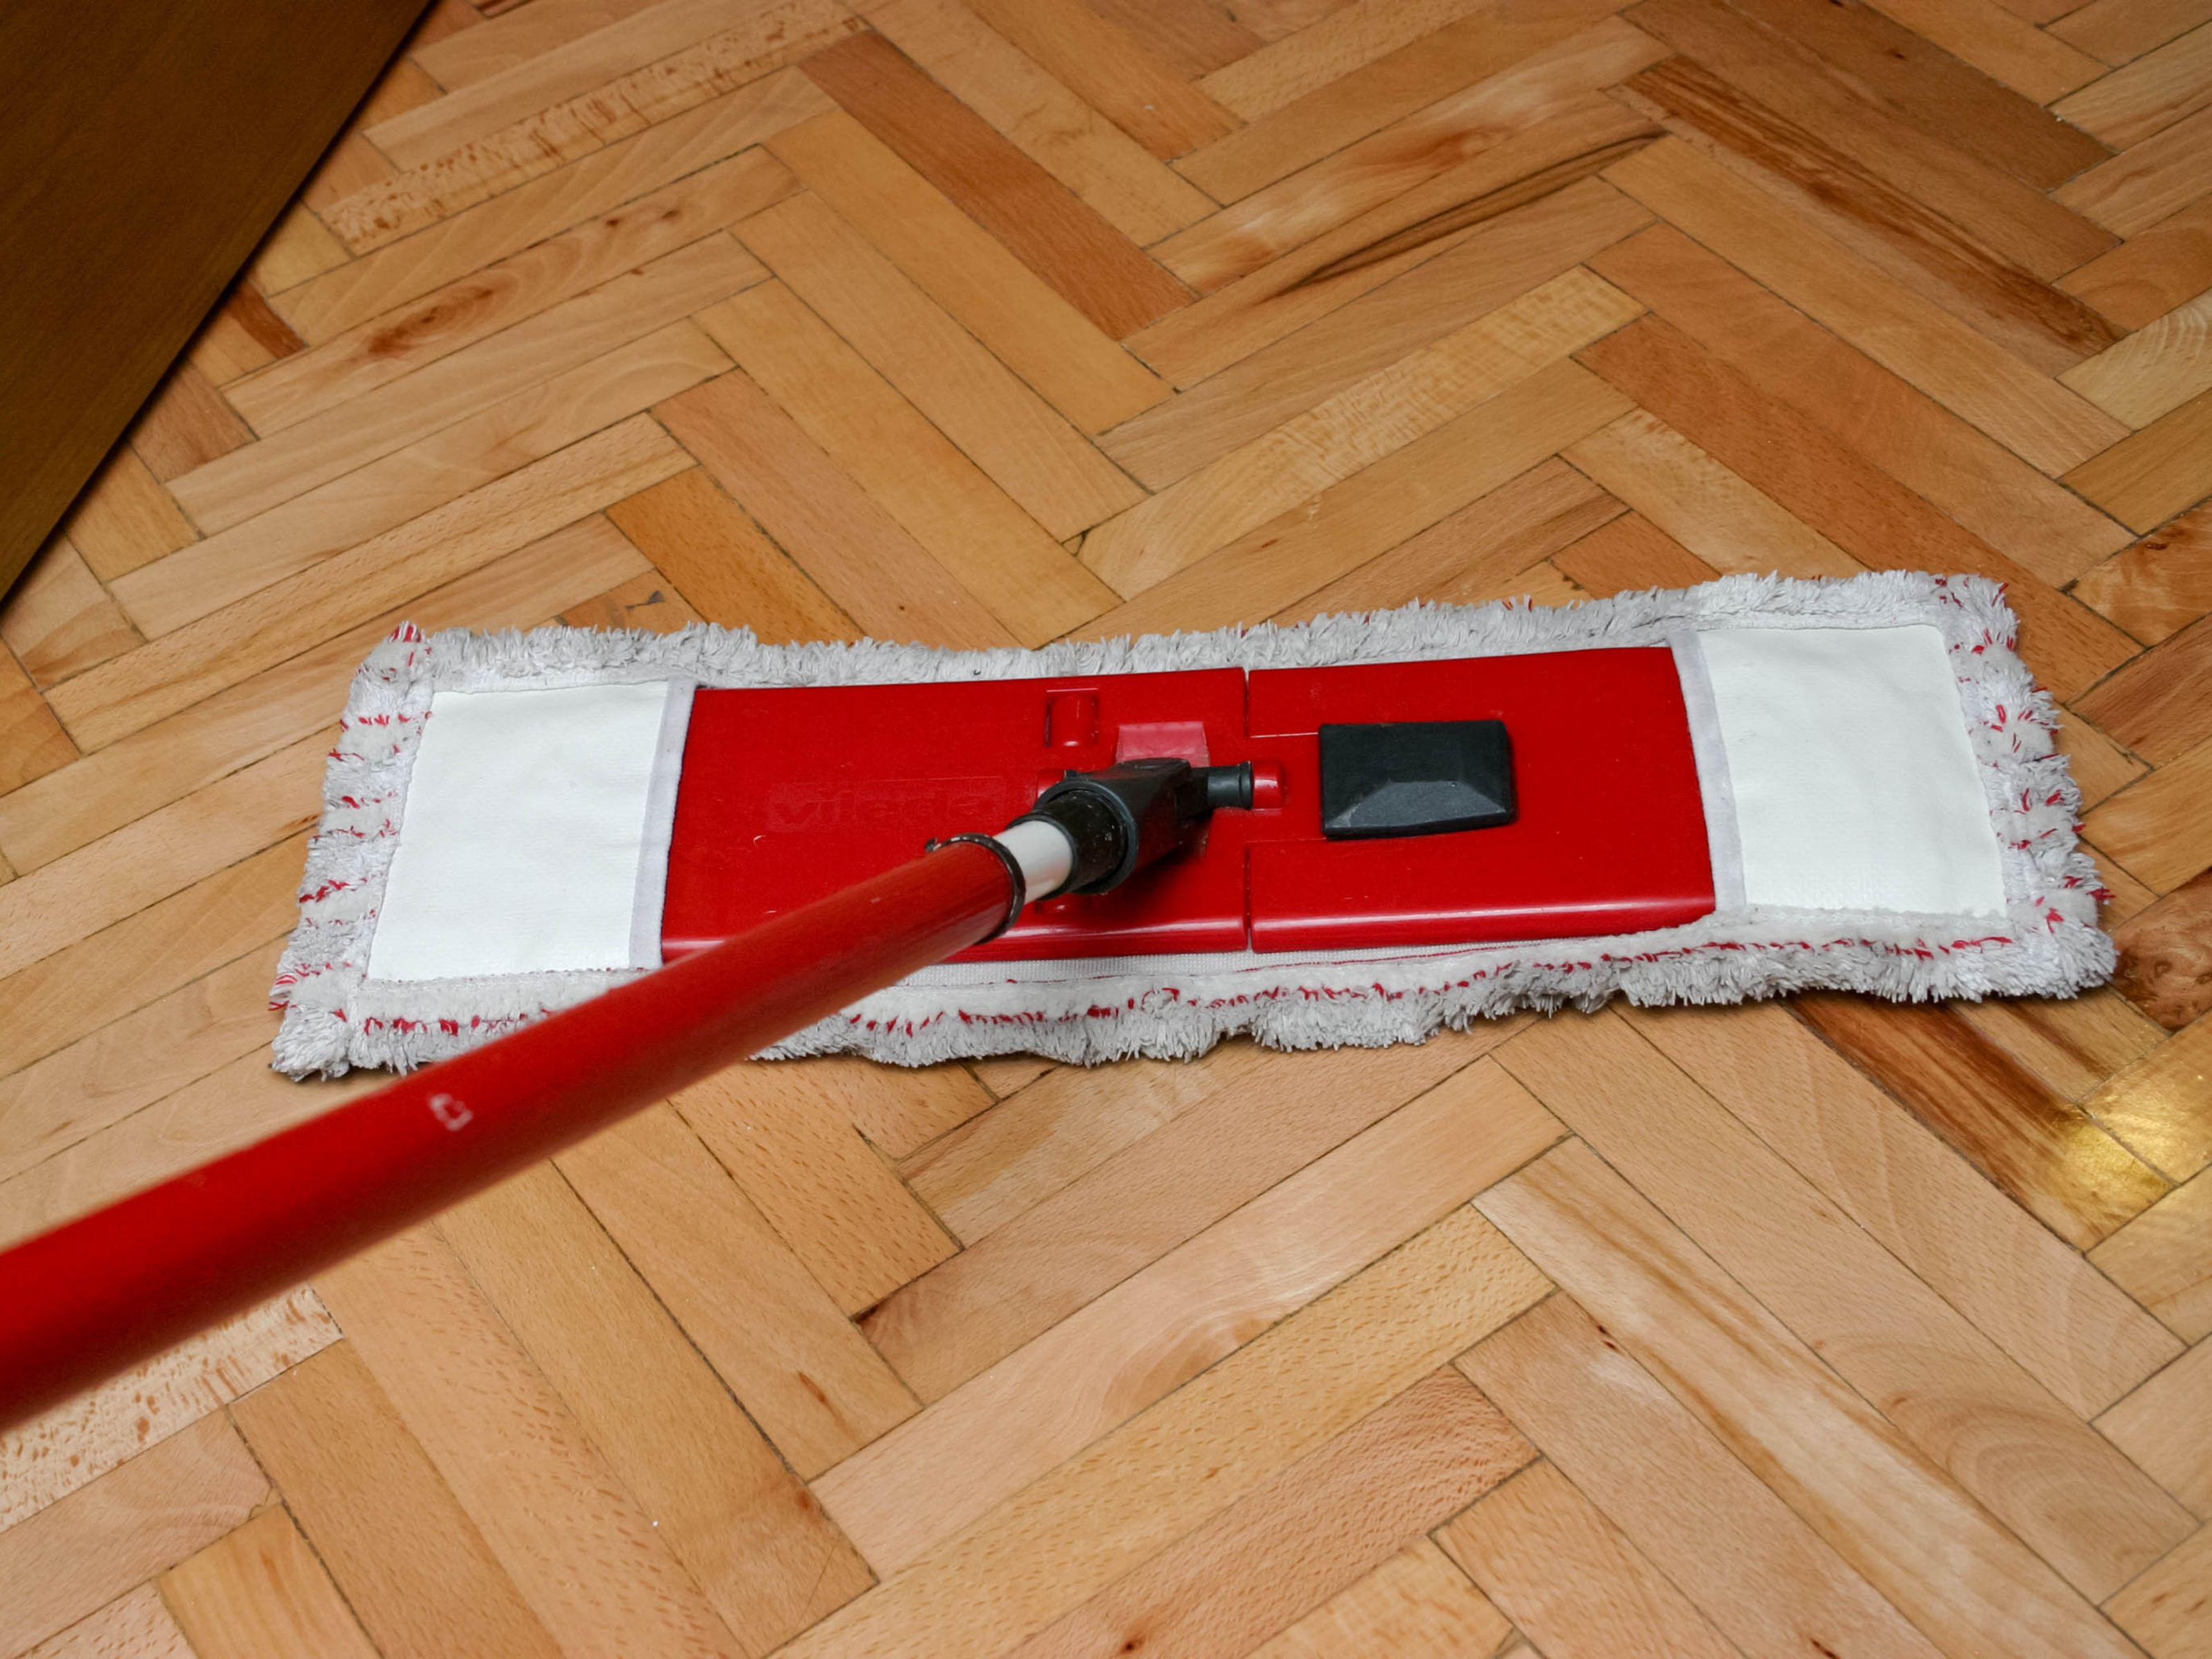 vinegar hardwood floor cleaner recipe of cleaning hardwood floors with vinegar hardwood floor cleaning with regard to cleaning hardwood floors with vinegar hardwood floor cleaning hardwood floor restoration floor cleaning